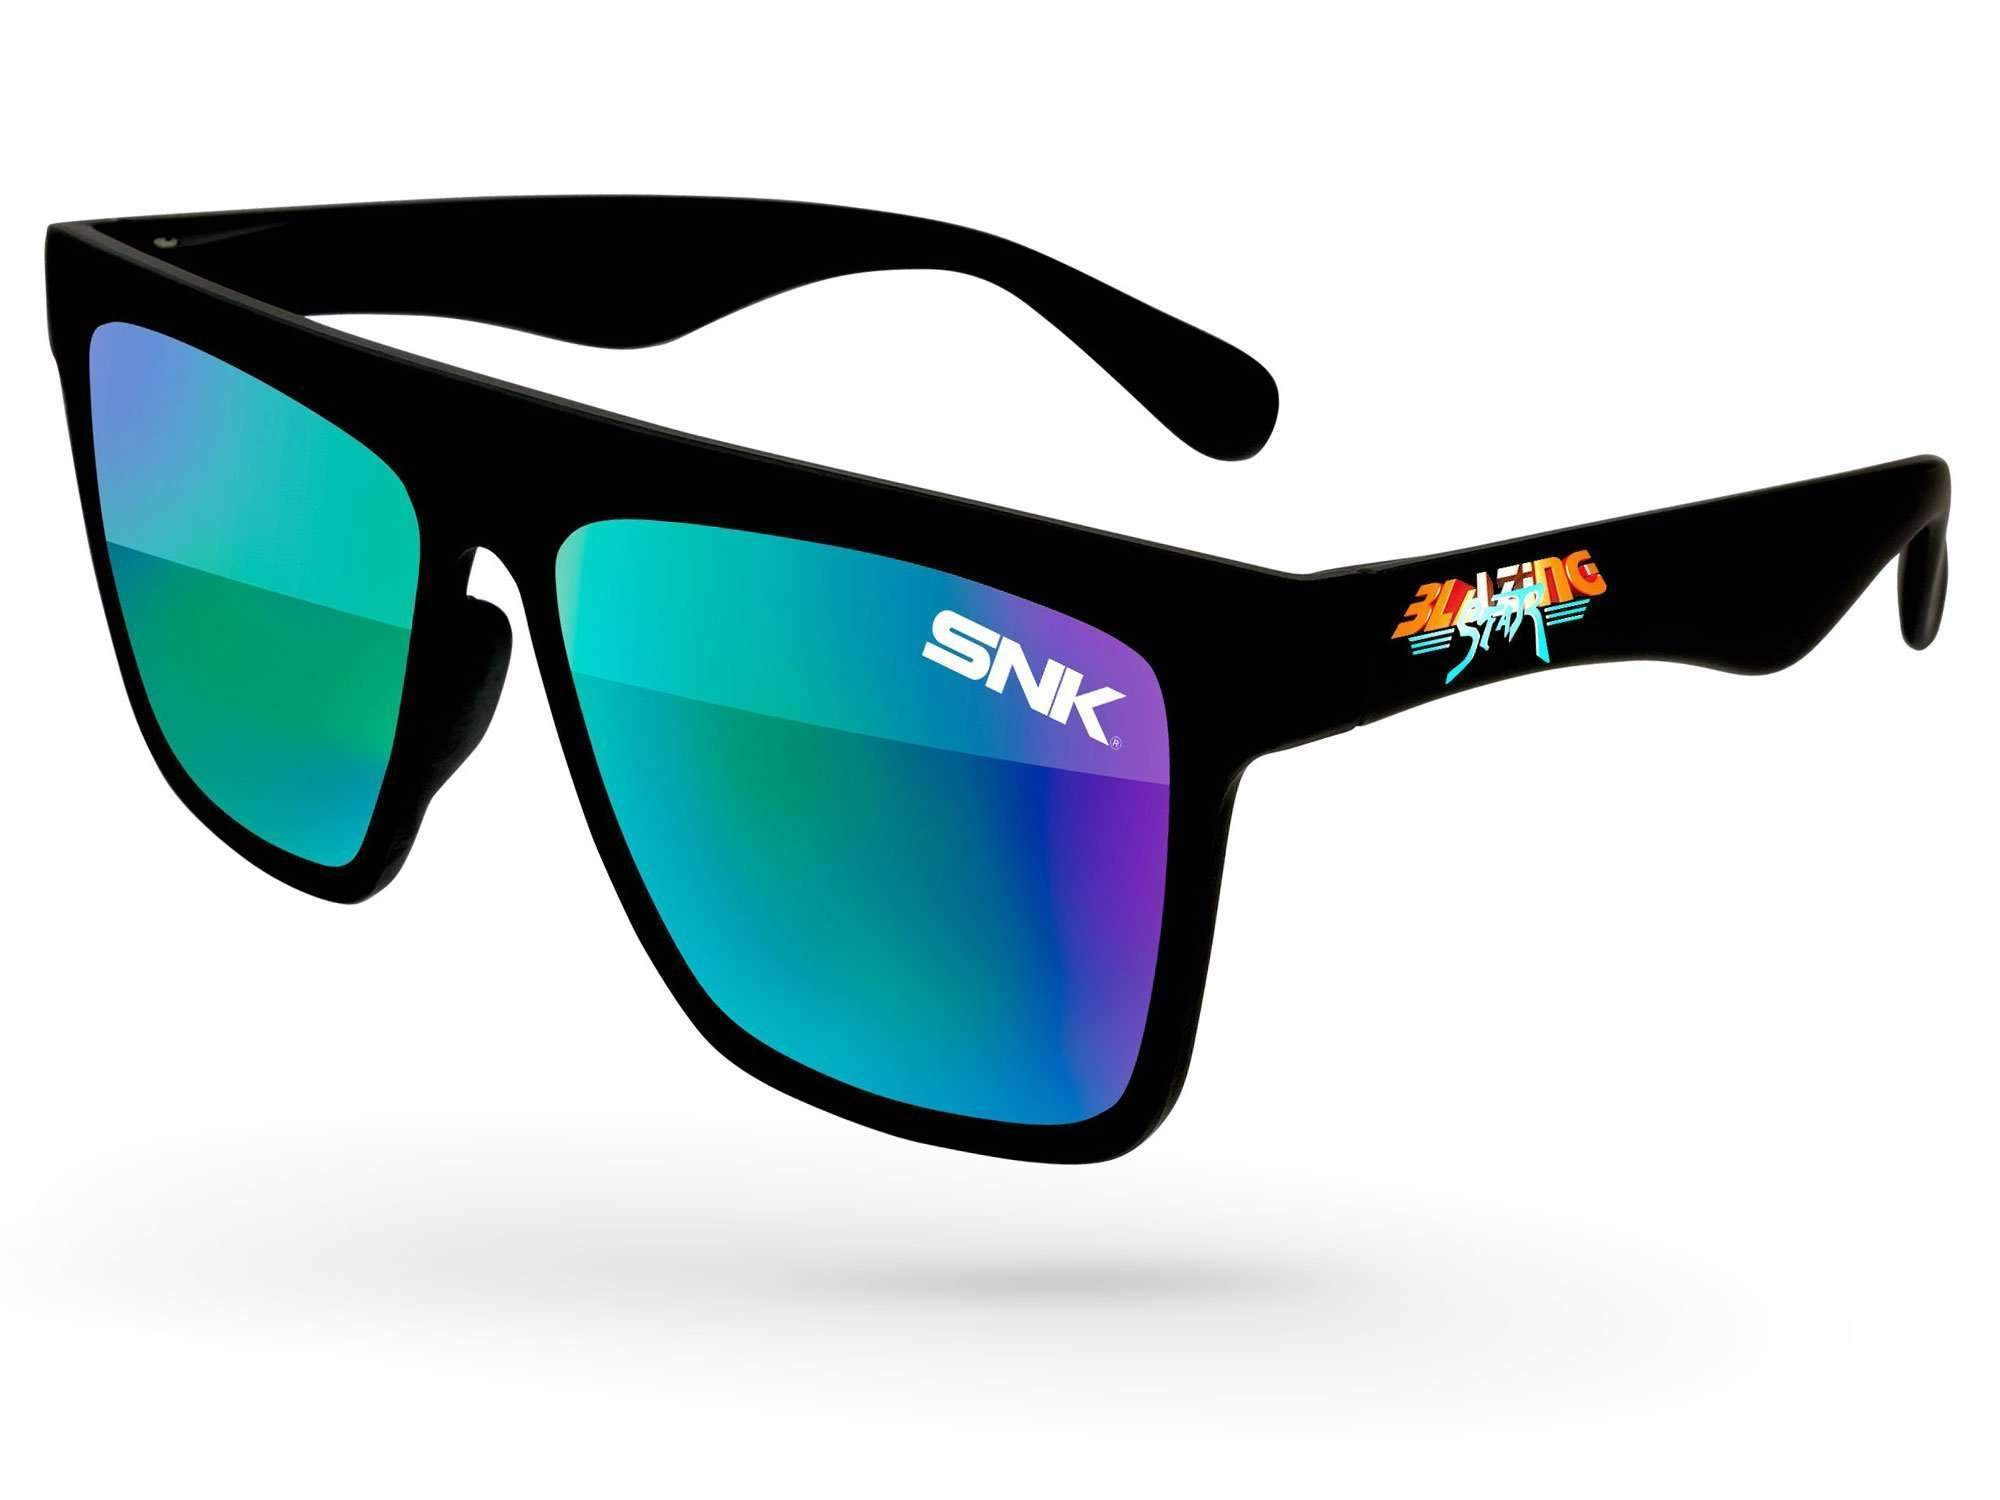 LM520 - Laser Mirror Promotional Sunglasses w/ 1-color lens imprint & full-color temple imprint